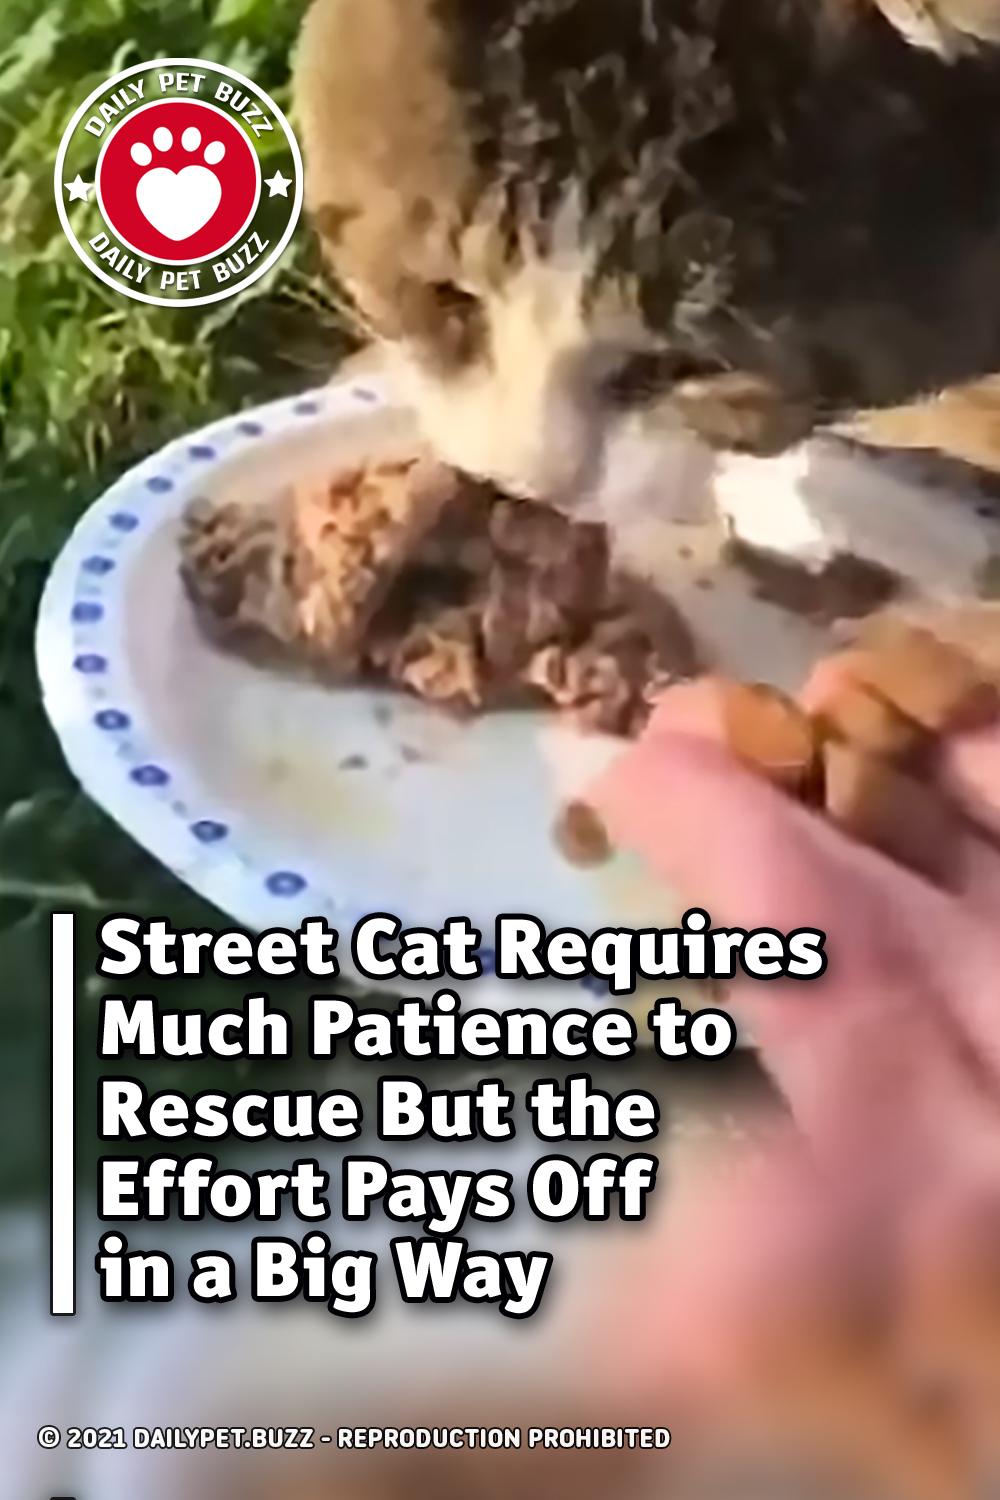 Street Cat Requires Much Patience to Rescue But the Effort Pays Off in a Big Way